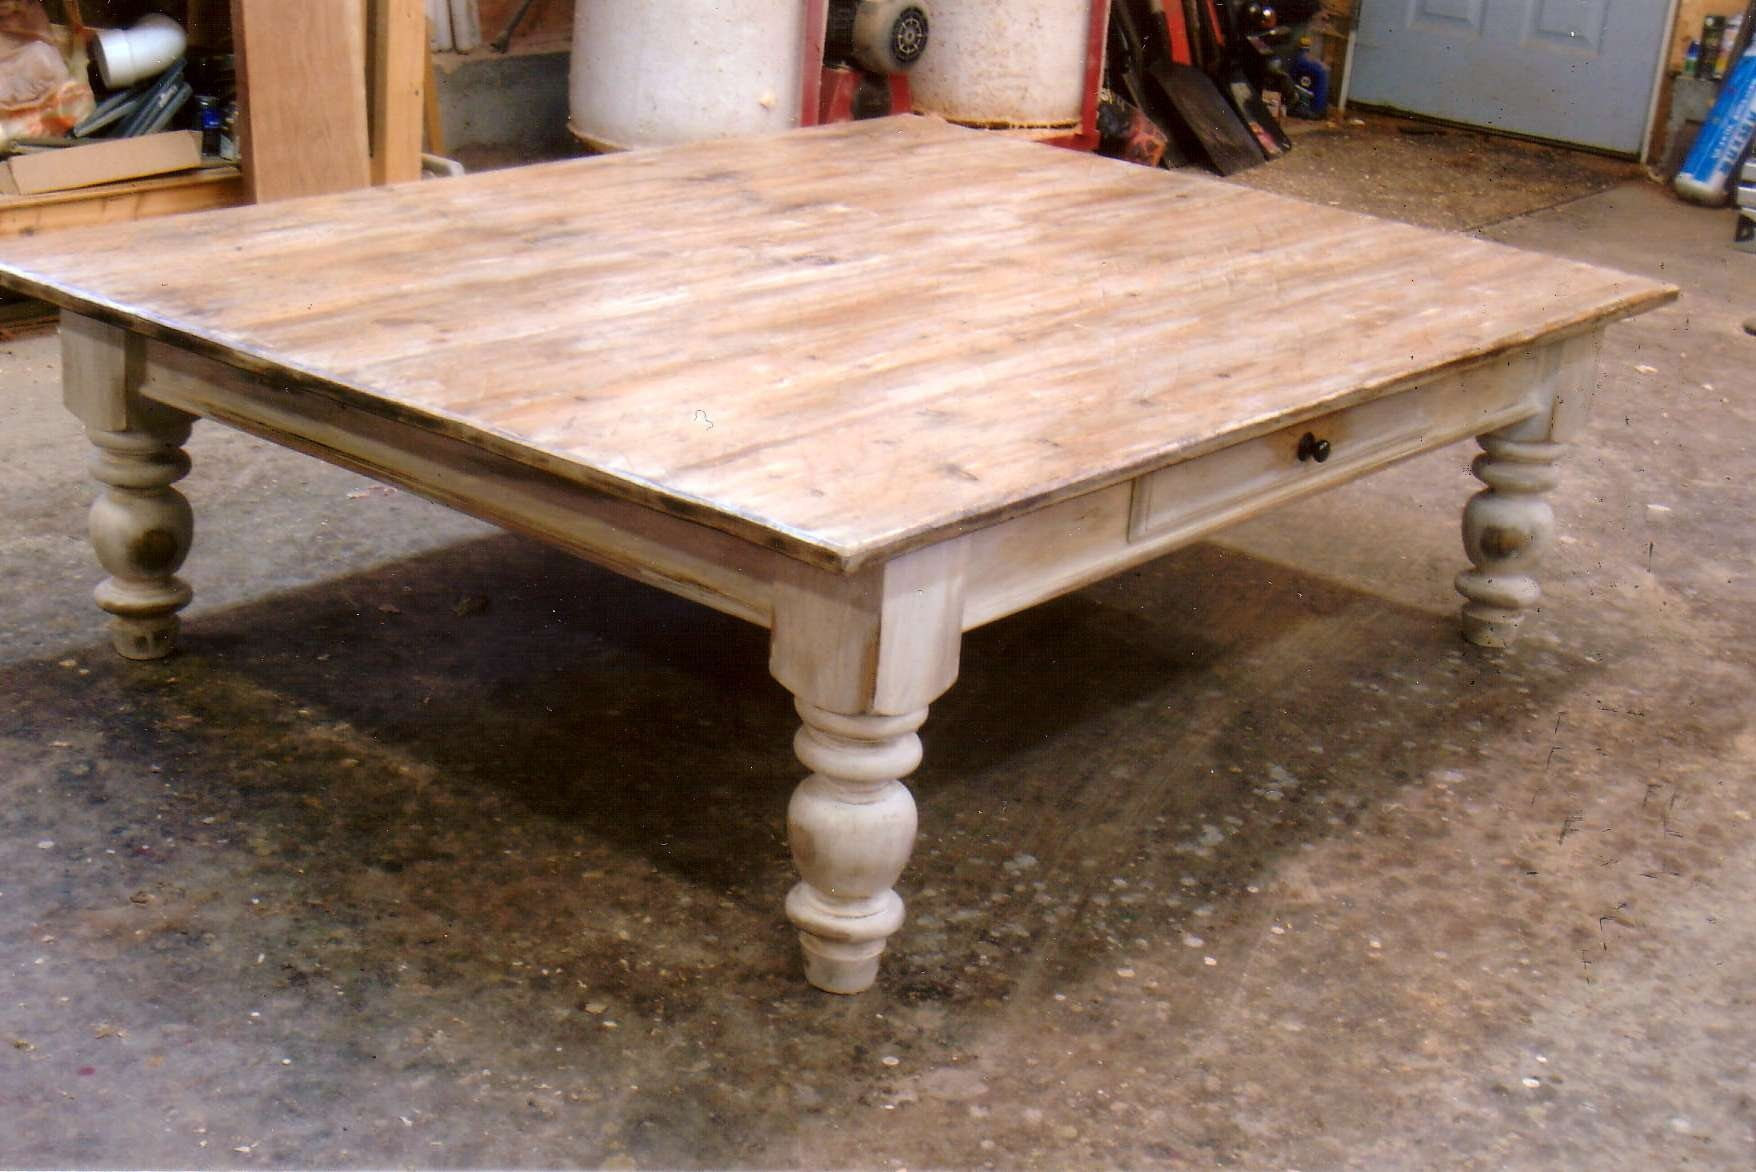 Fashionable Rustic Square Coffee Table With Storage With Coffee Table : Wonderful Reclaimed Wood Coffee Table Rustic Coffee (View 15 of 20)